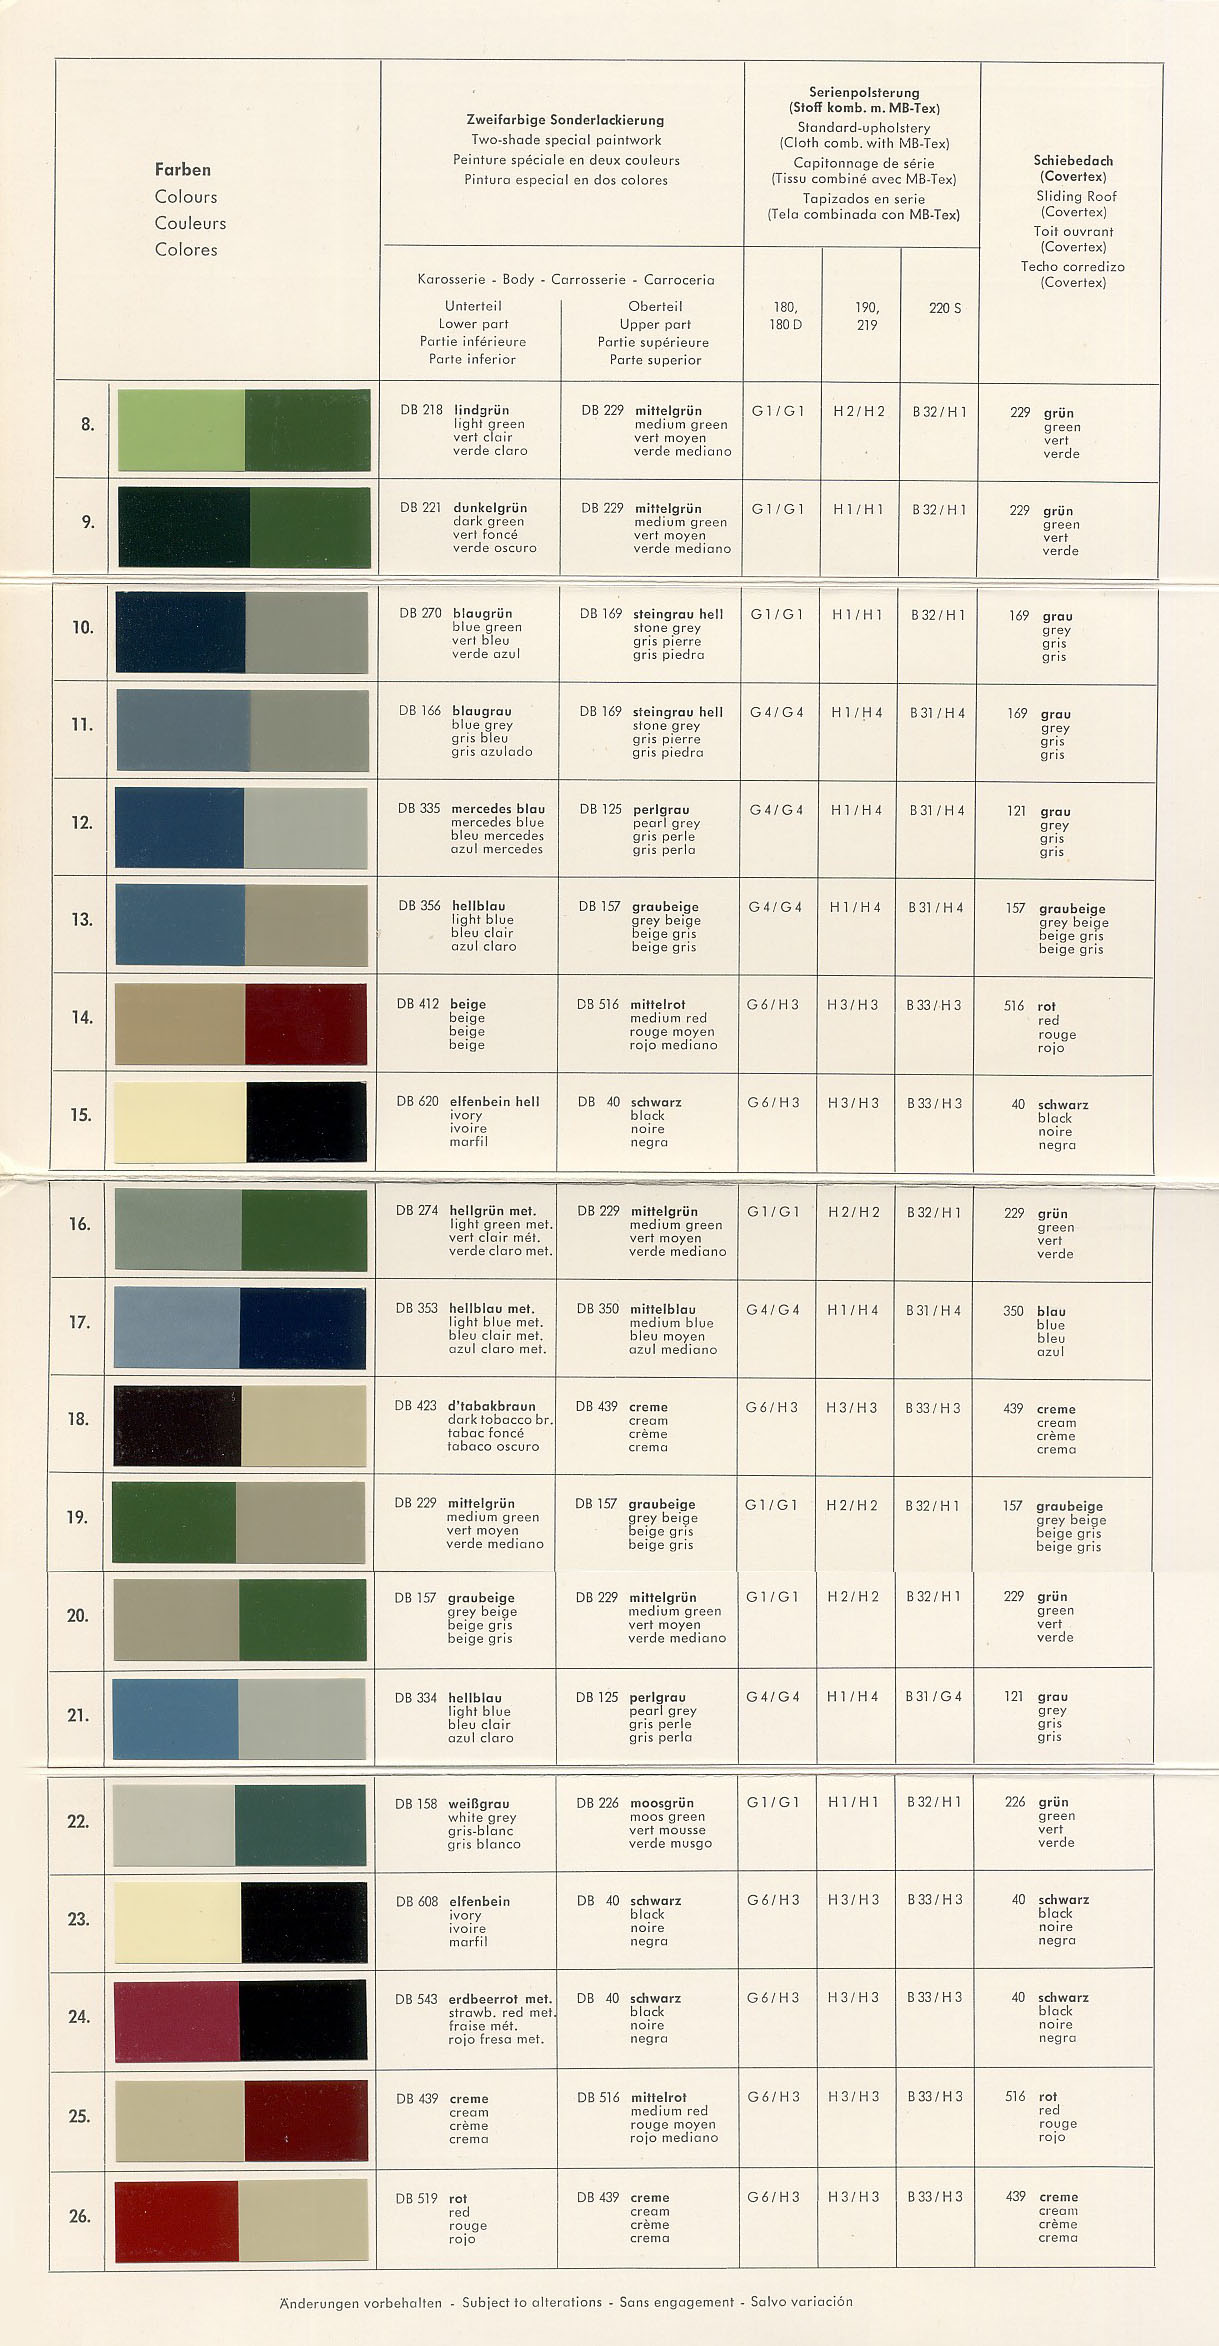 Mercedes benz ponton paint codes color charts mbzponton color charts paint codes nvjuhfo Gallery